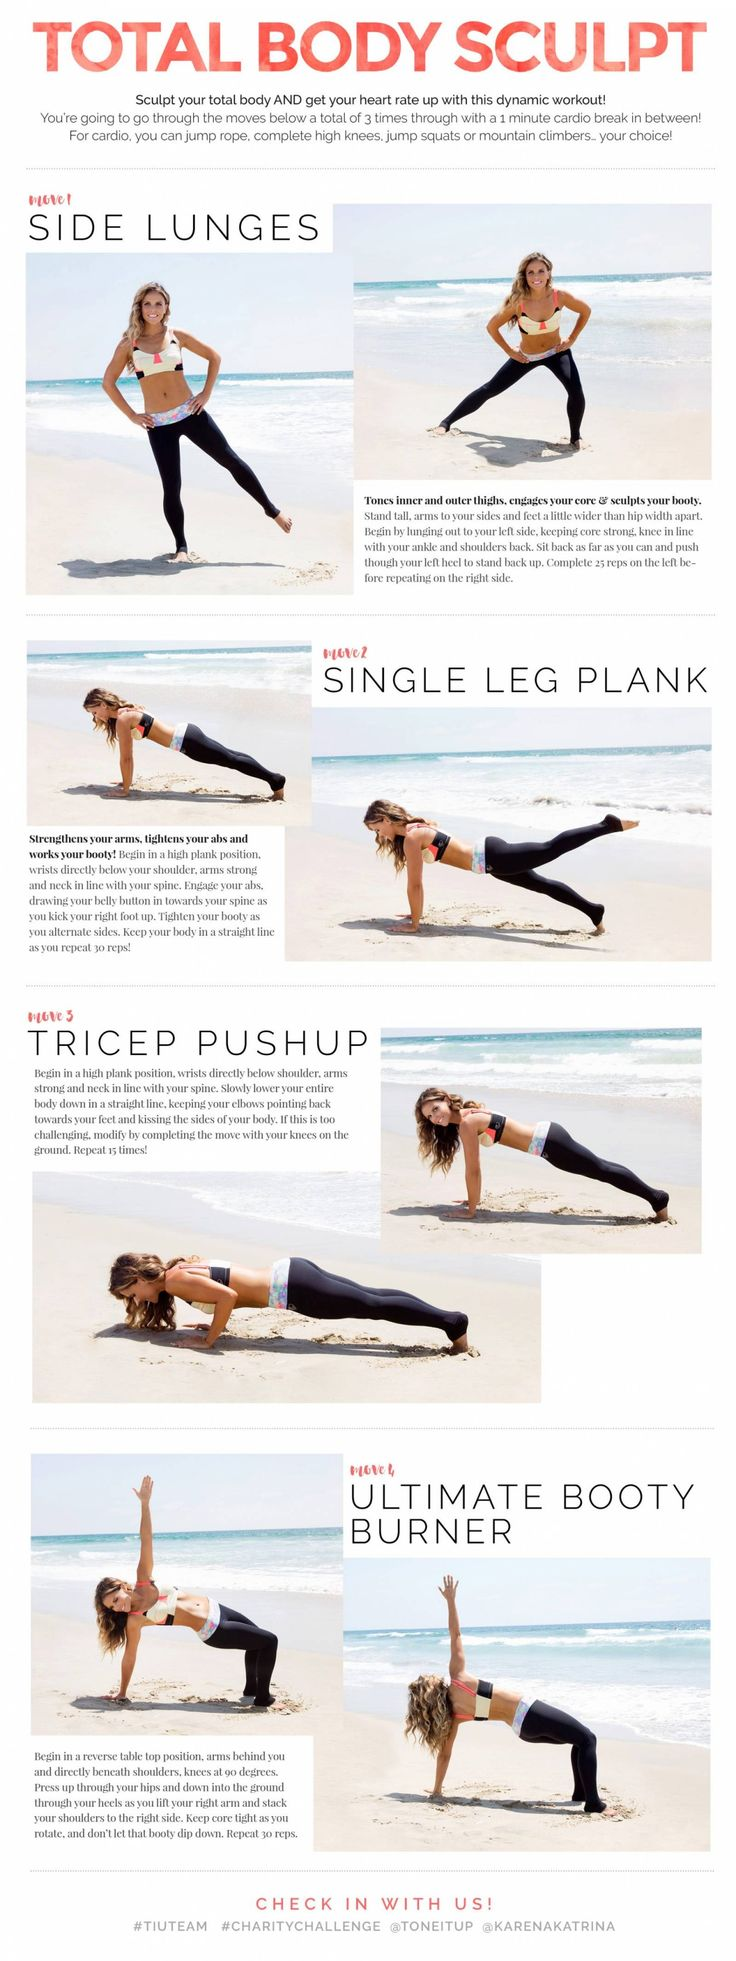 The BEST way to sculpt your whole body!